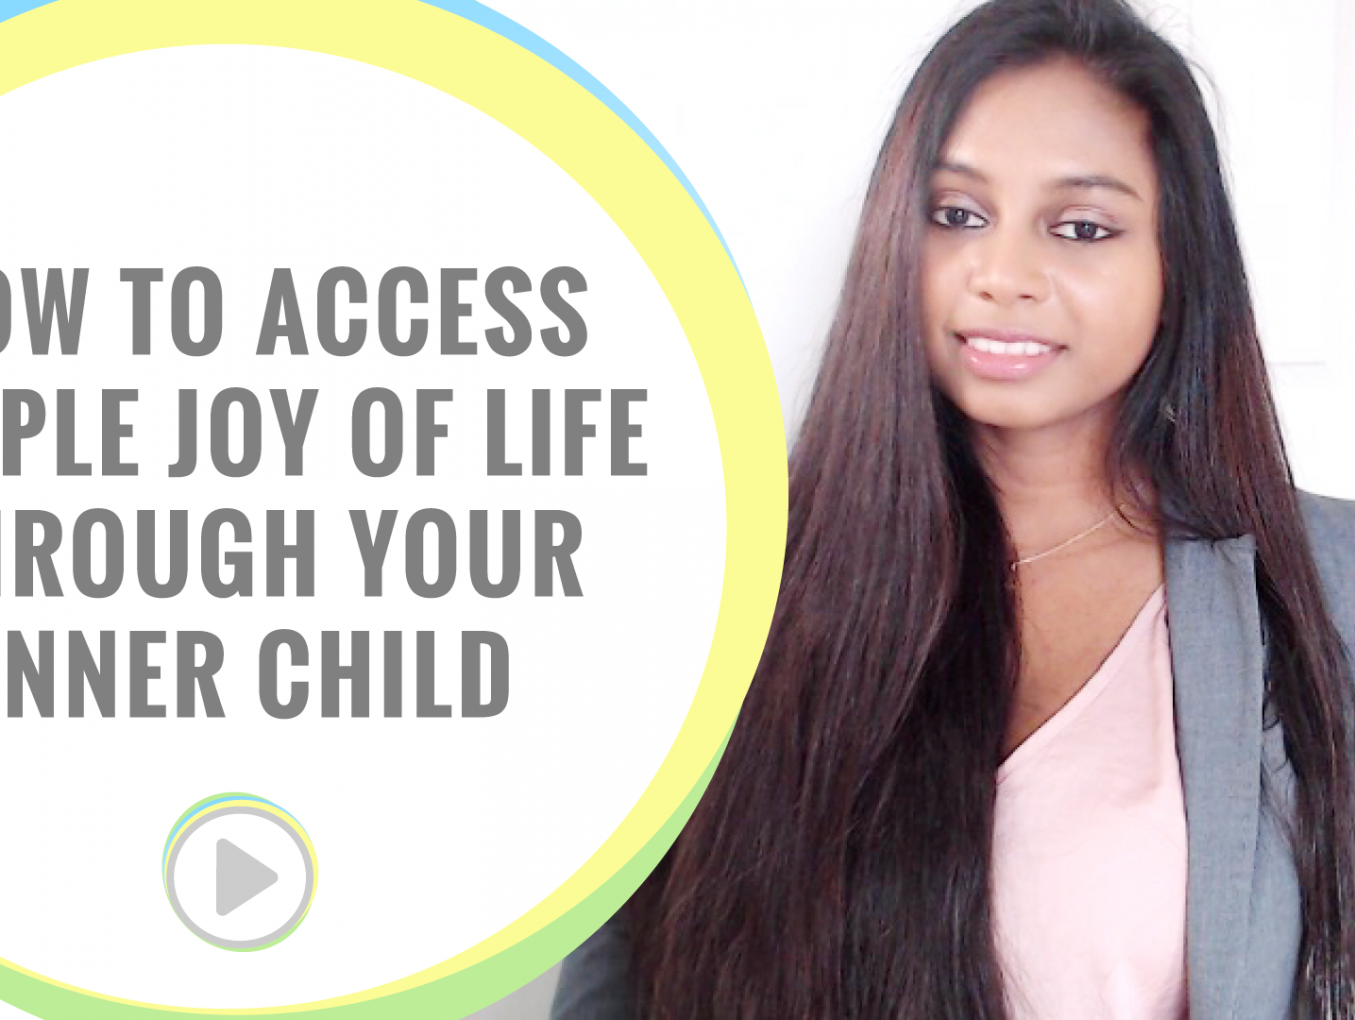 Self love: How to access simple joy through your inner child